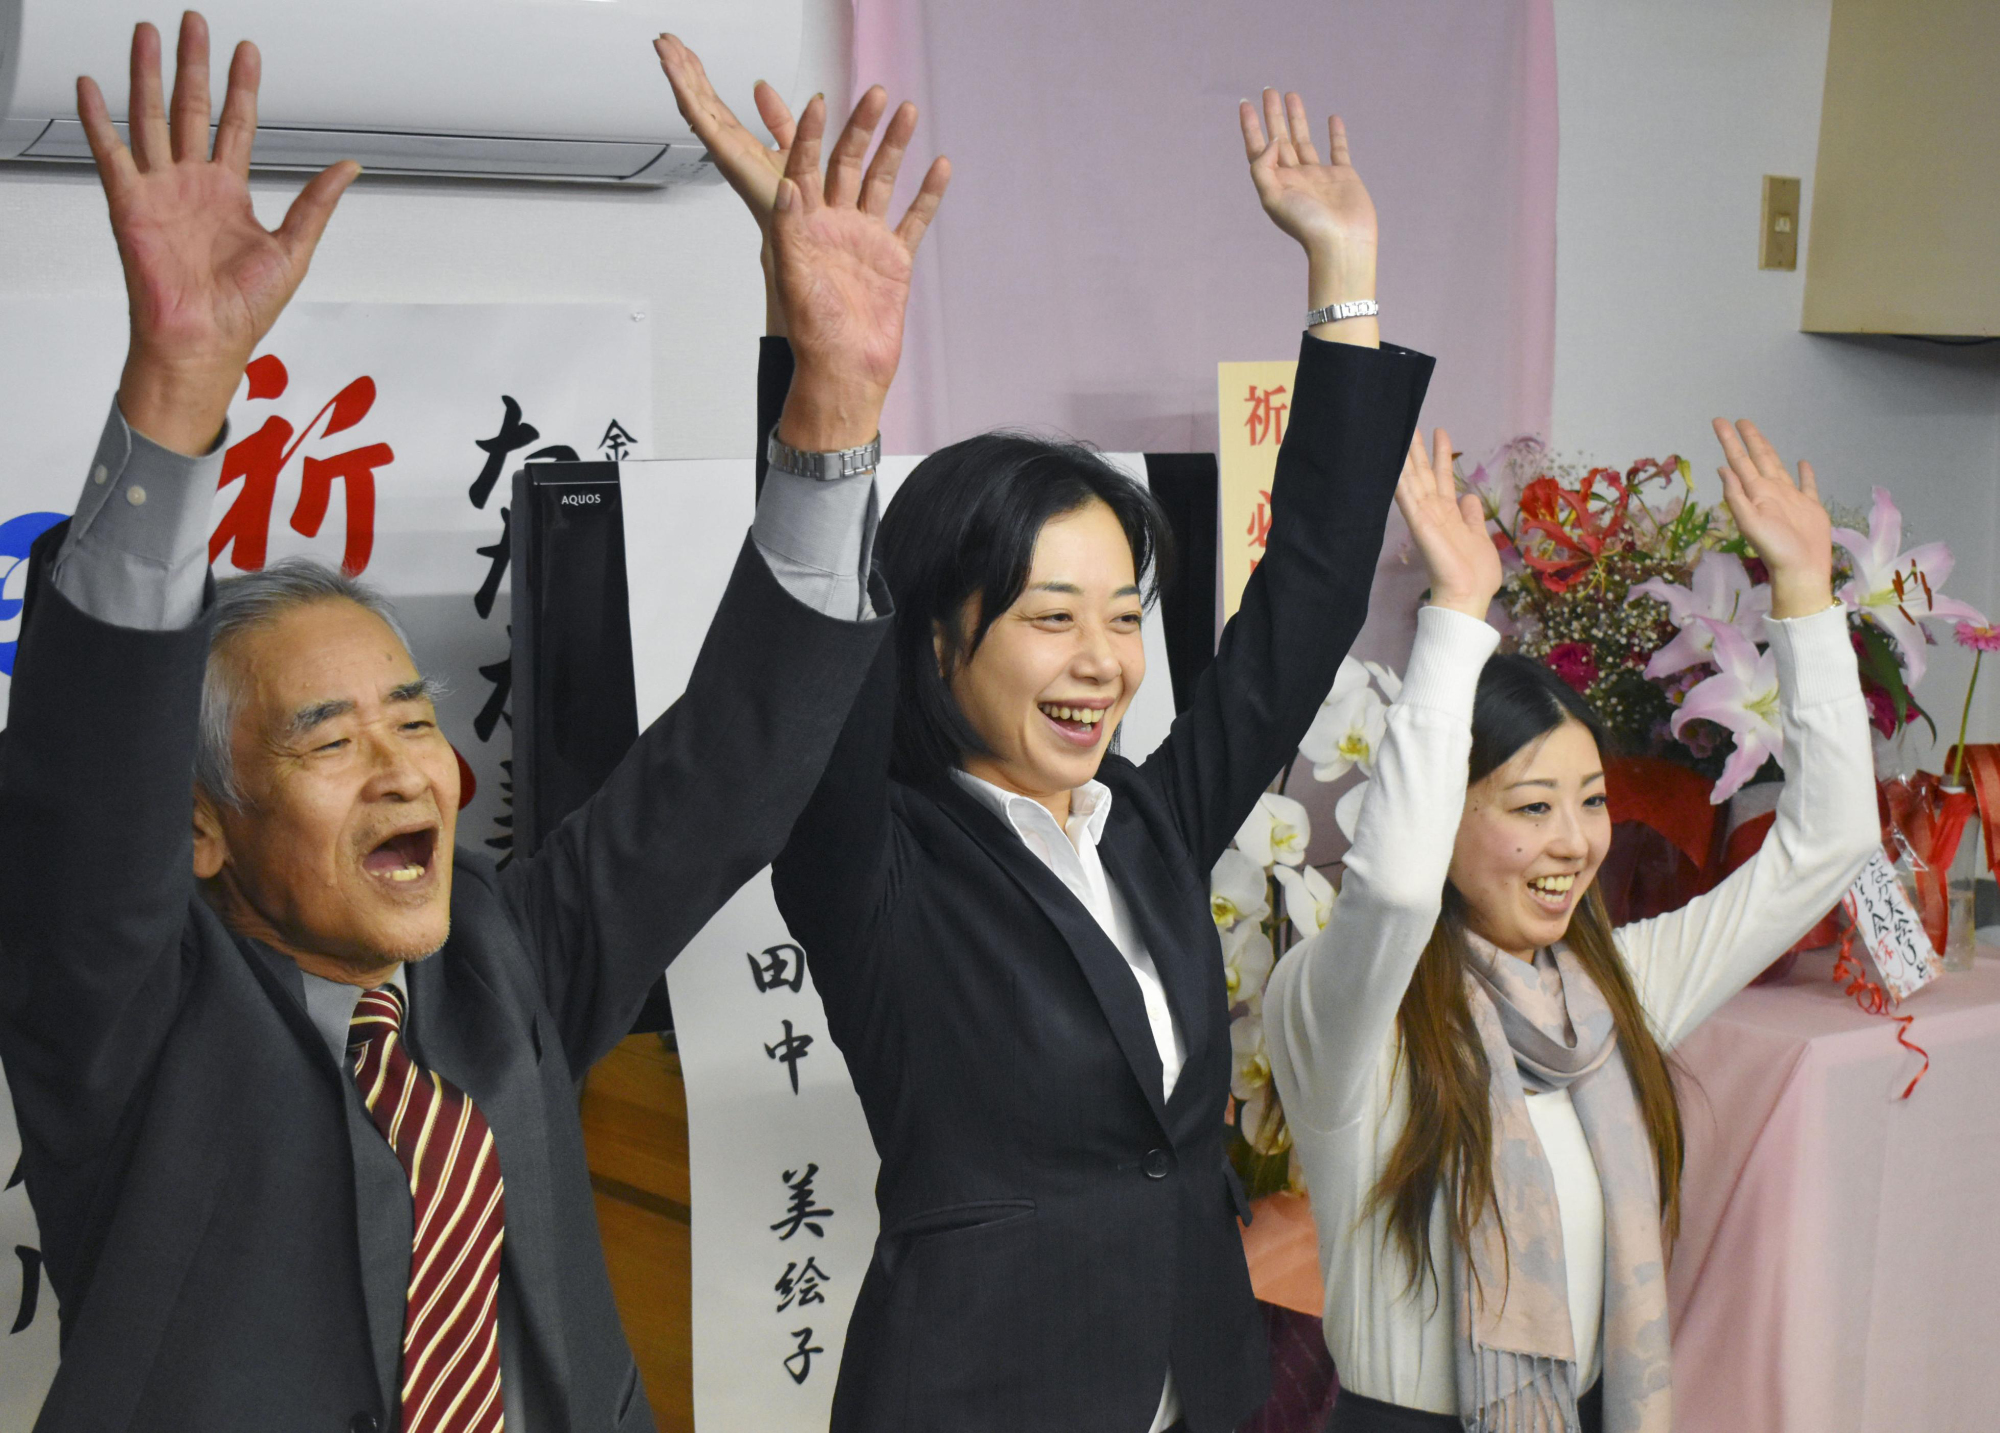 Former Lower House member Mieko Tanaka (center) celebrates with supporters after winning a seat in the Kanazawa Municipal Assembly on Sunday. | KYODO